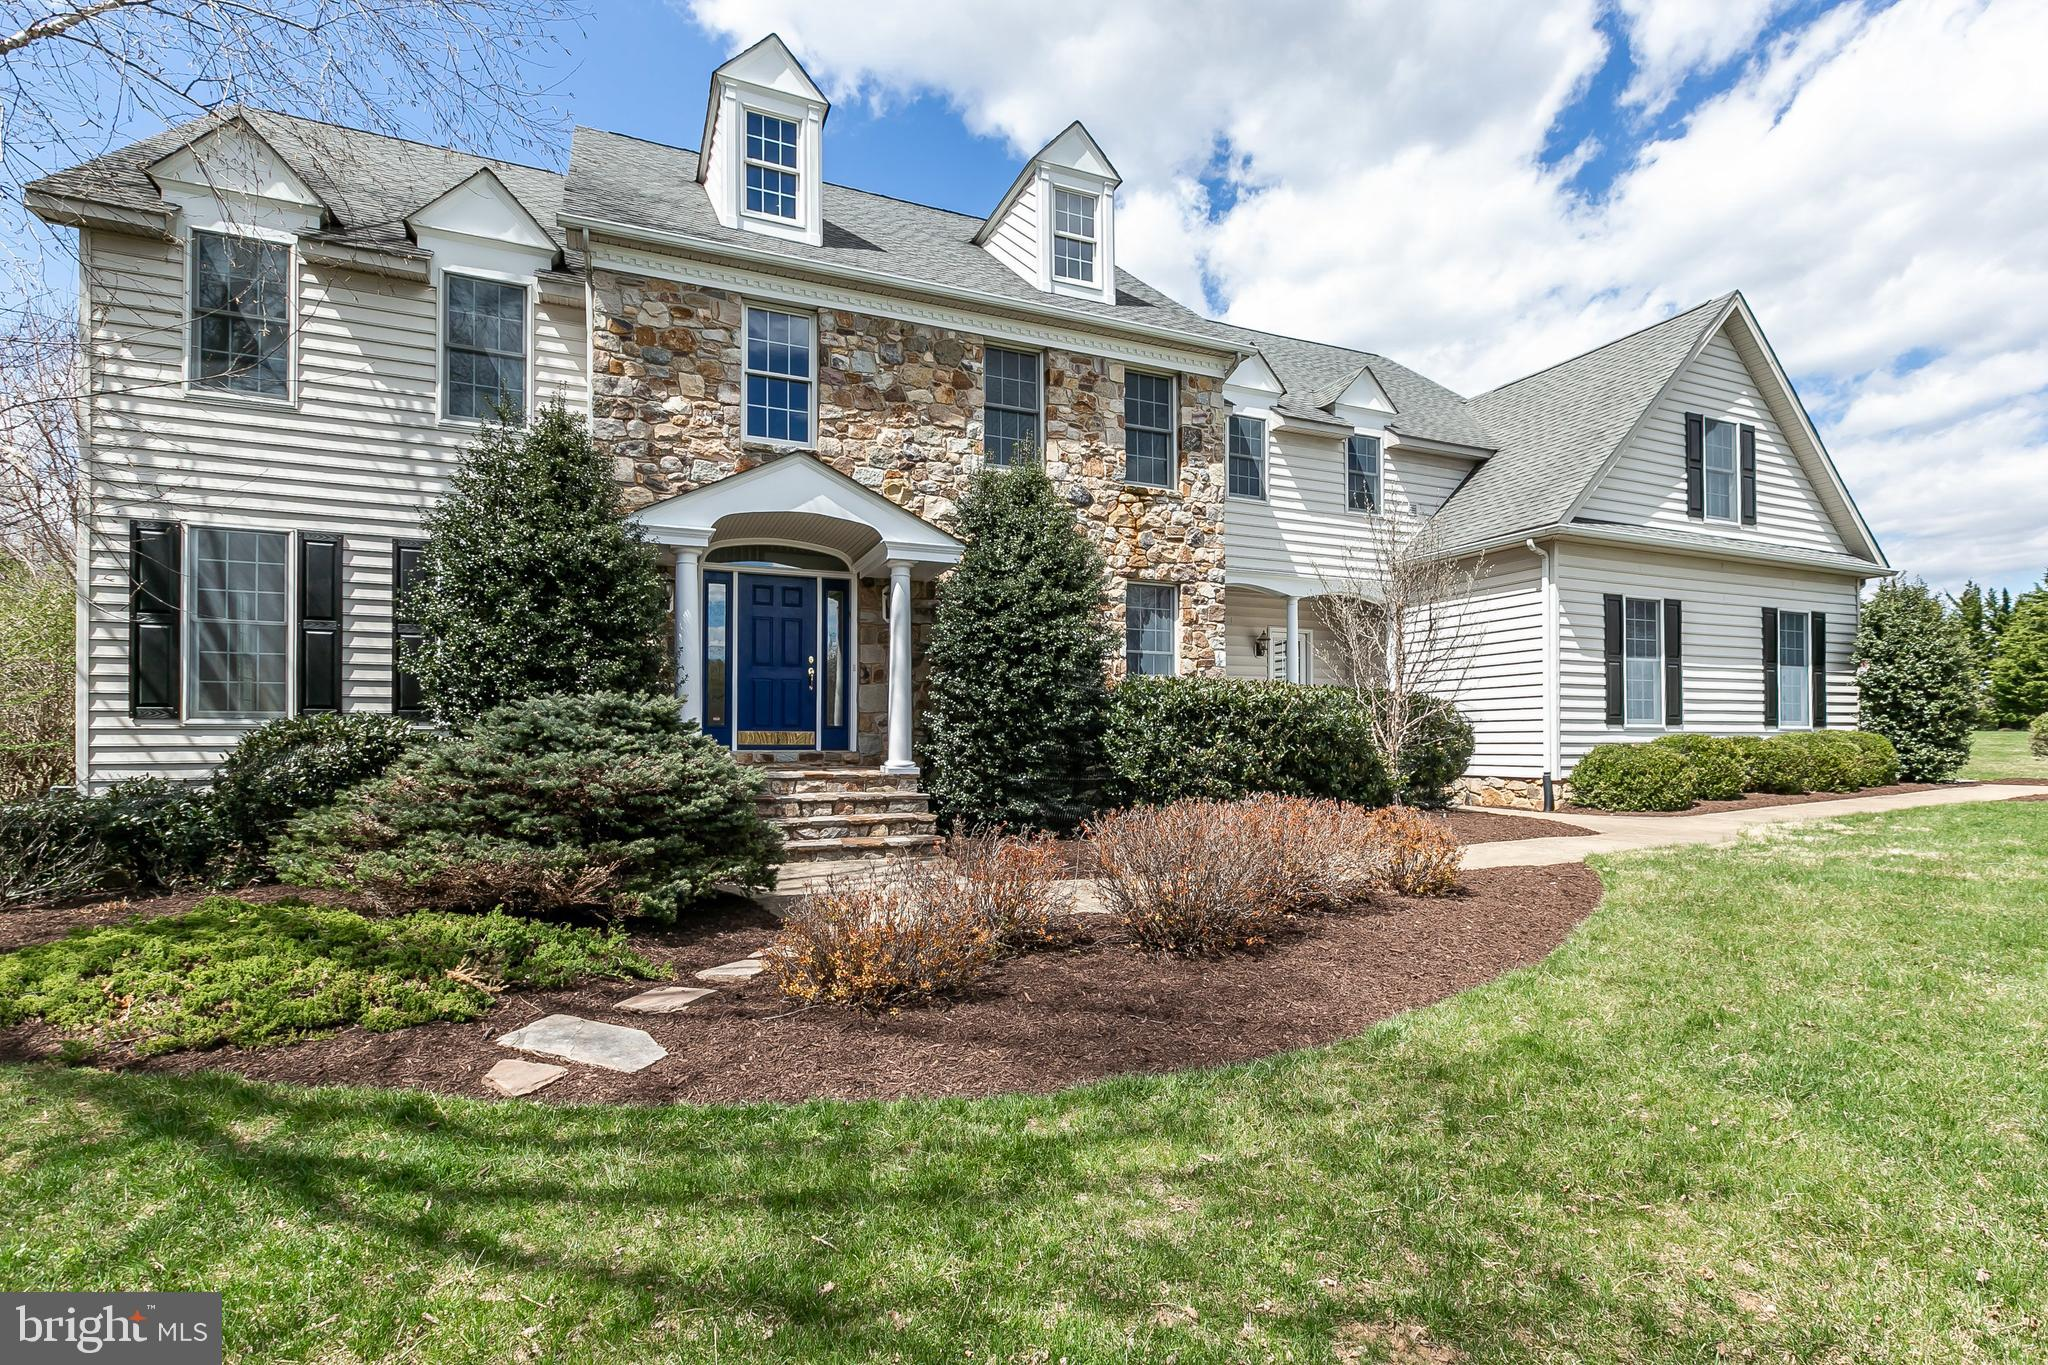 5 OLD MANOR COURT, REISTERSTOWN, MD 21136